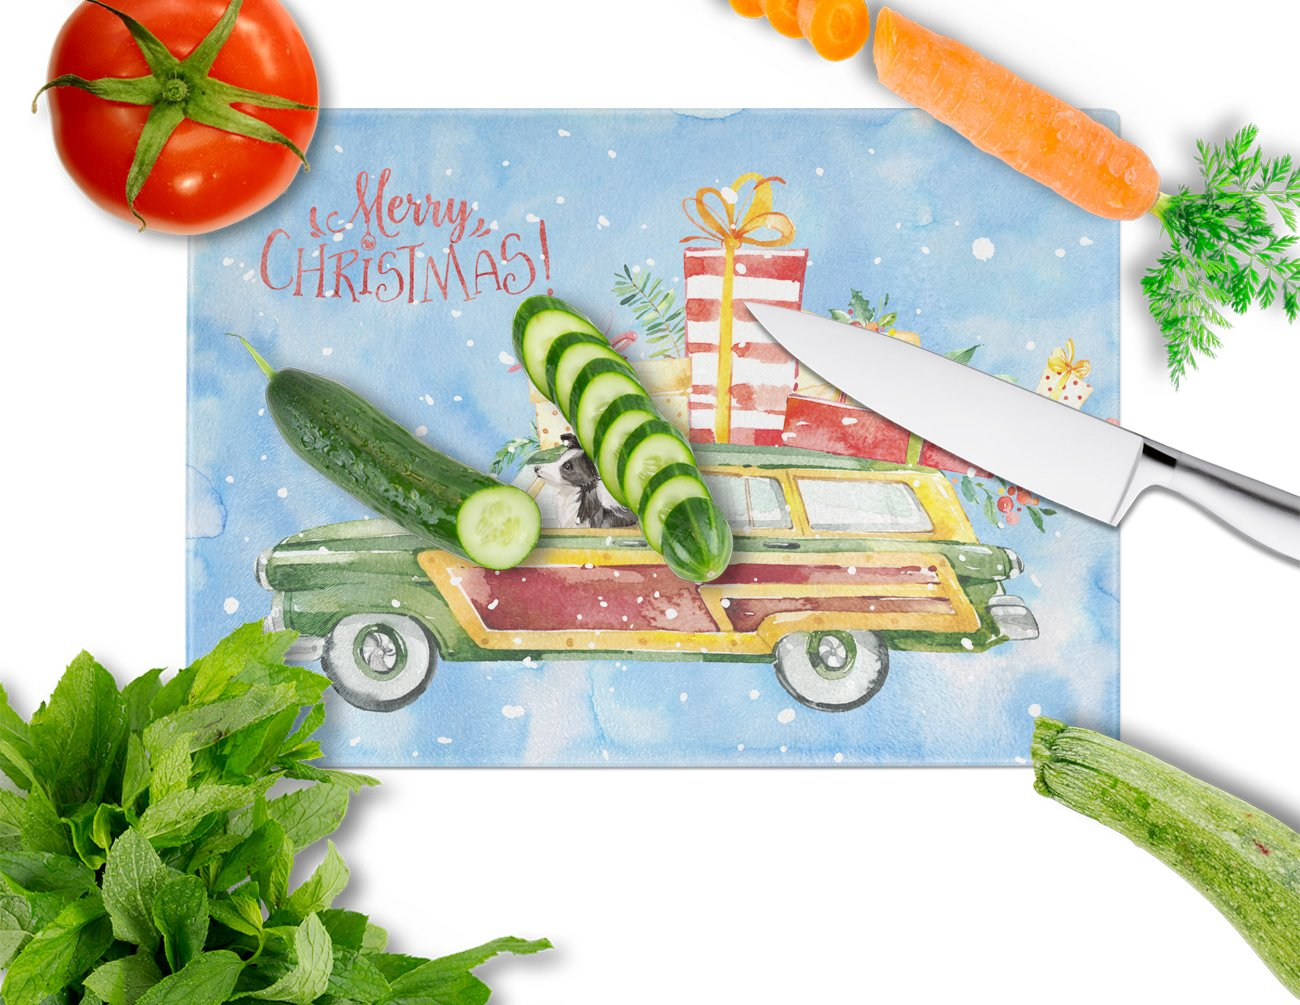 Merry Christmas Border Collie Glass Cutting Board Large CK2445LCB by Caroline's Treasures